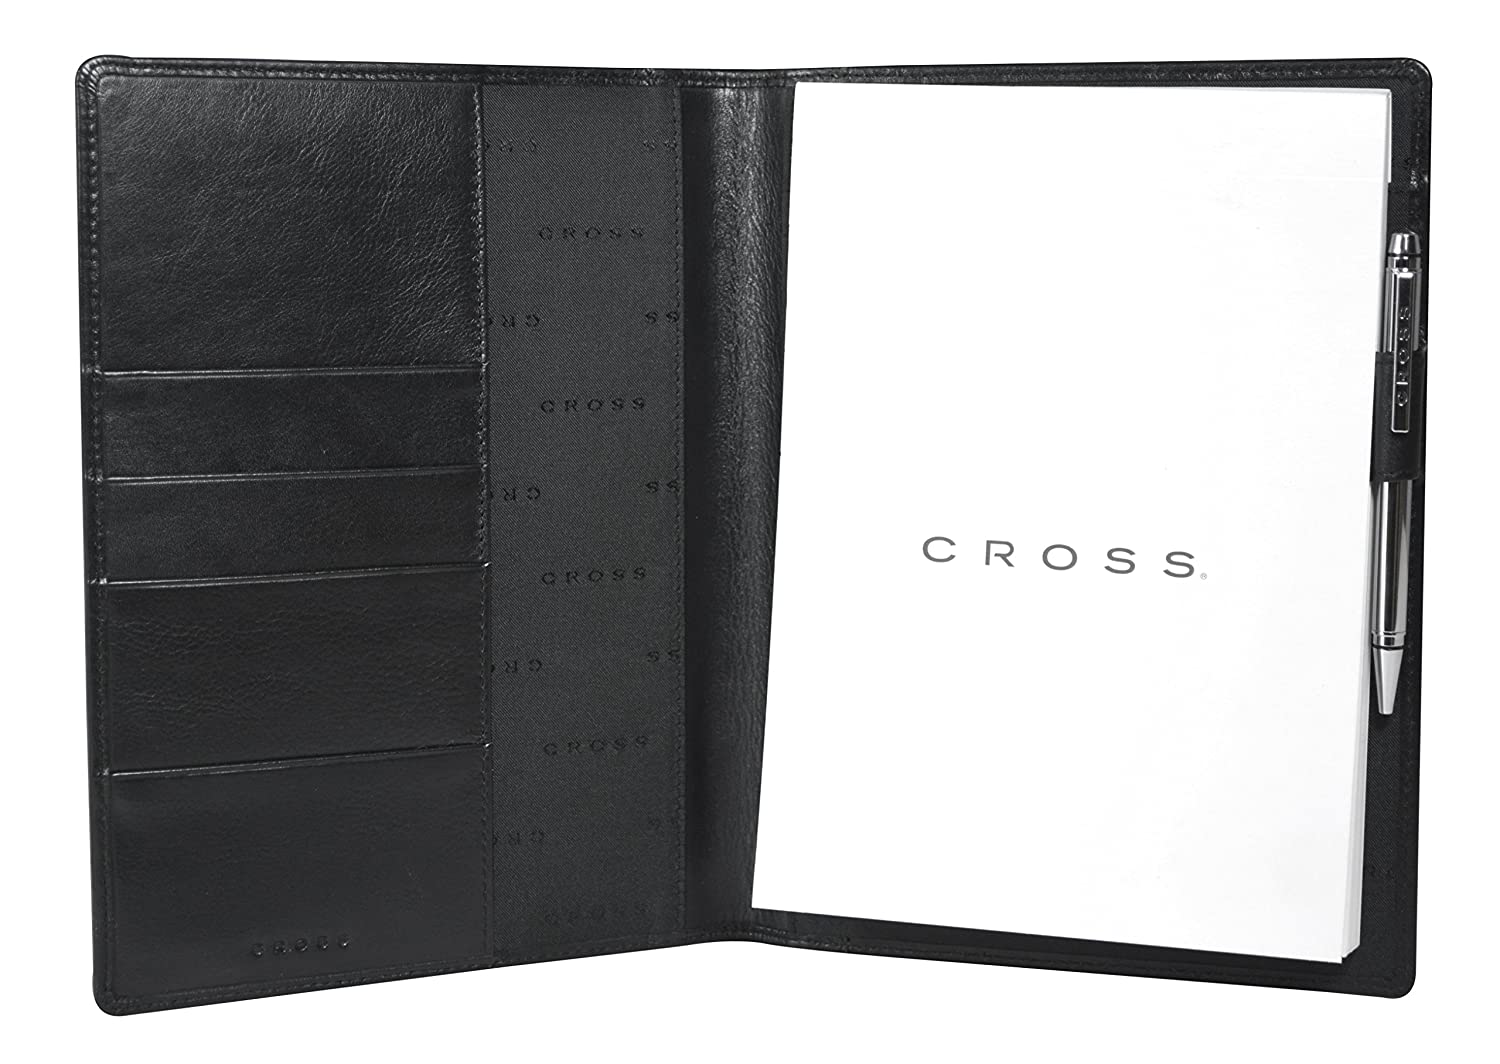 Amazon.com: Cross Classic Century Mens A5 PLANNER WITH ...